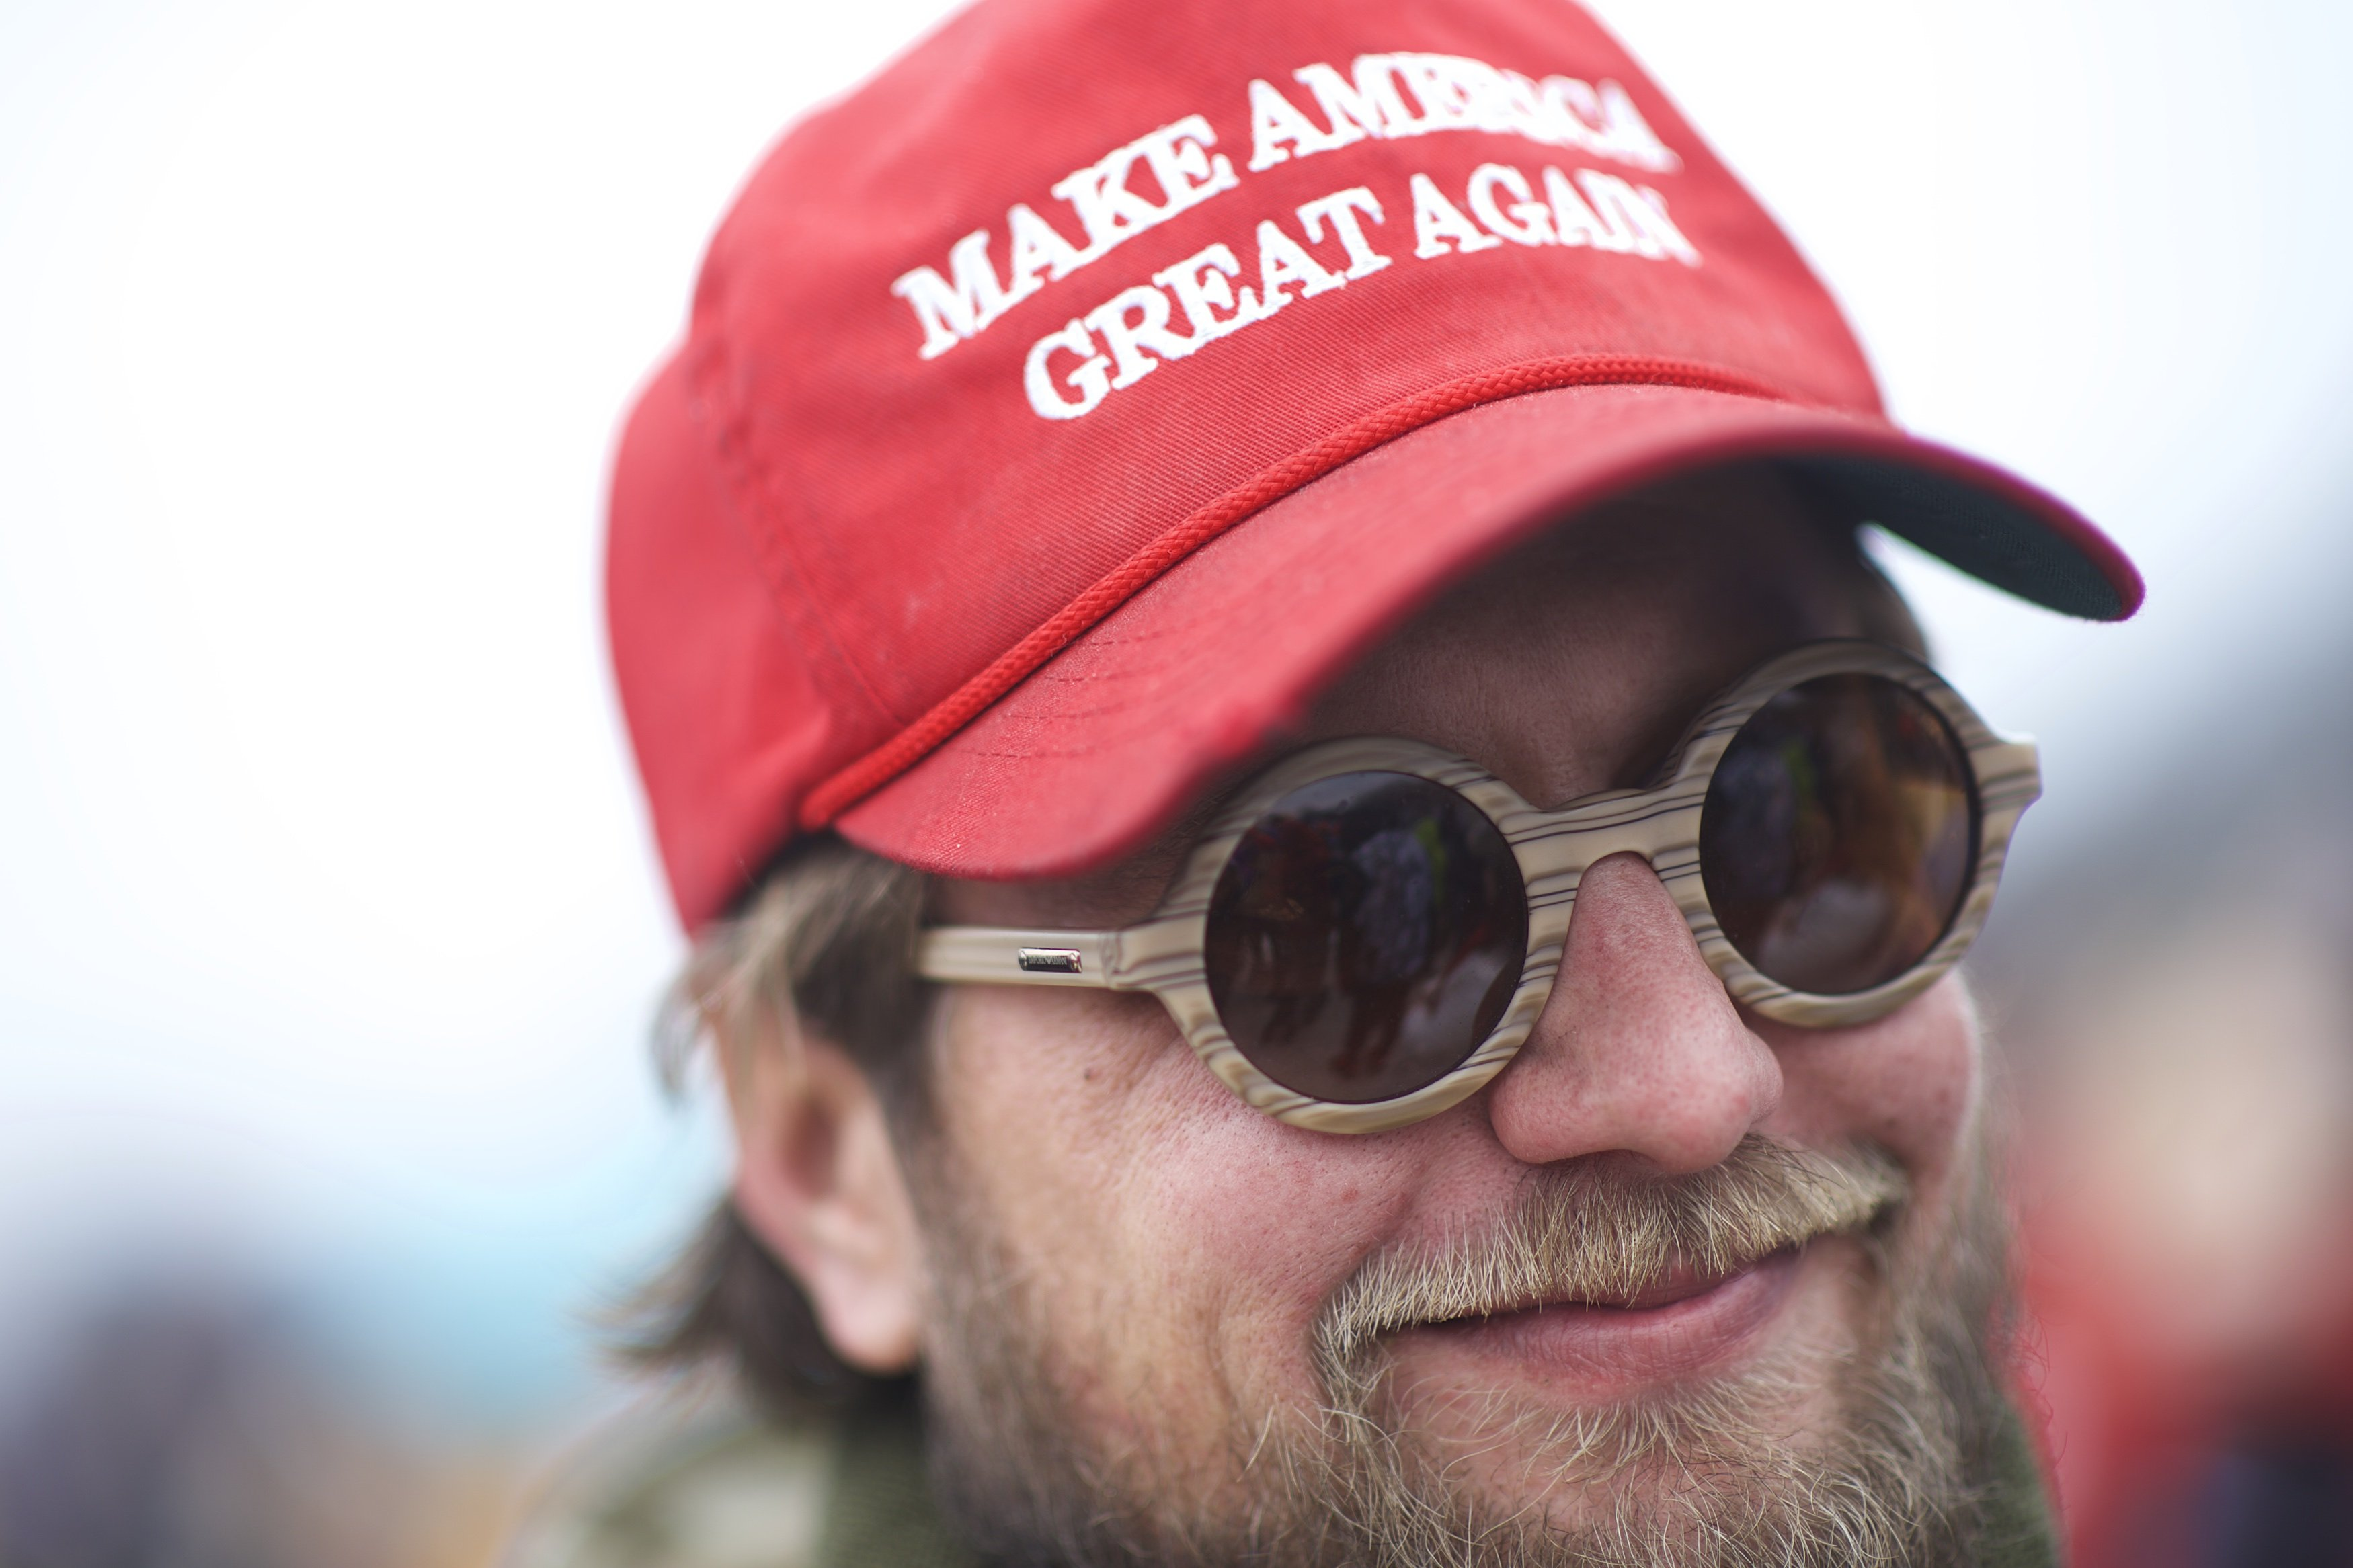 Man wearing a MAGA hat | Photo: Getty Images